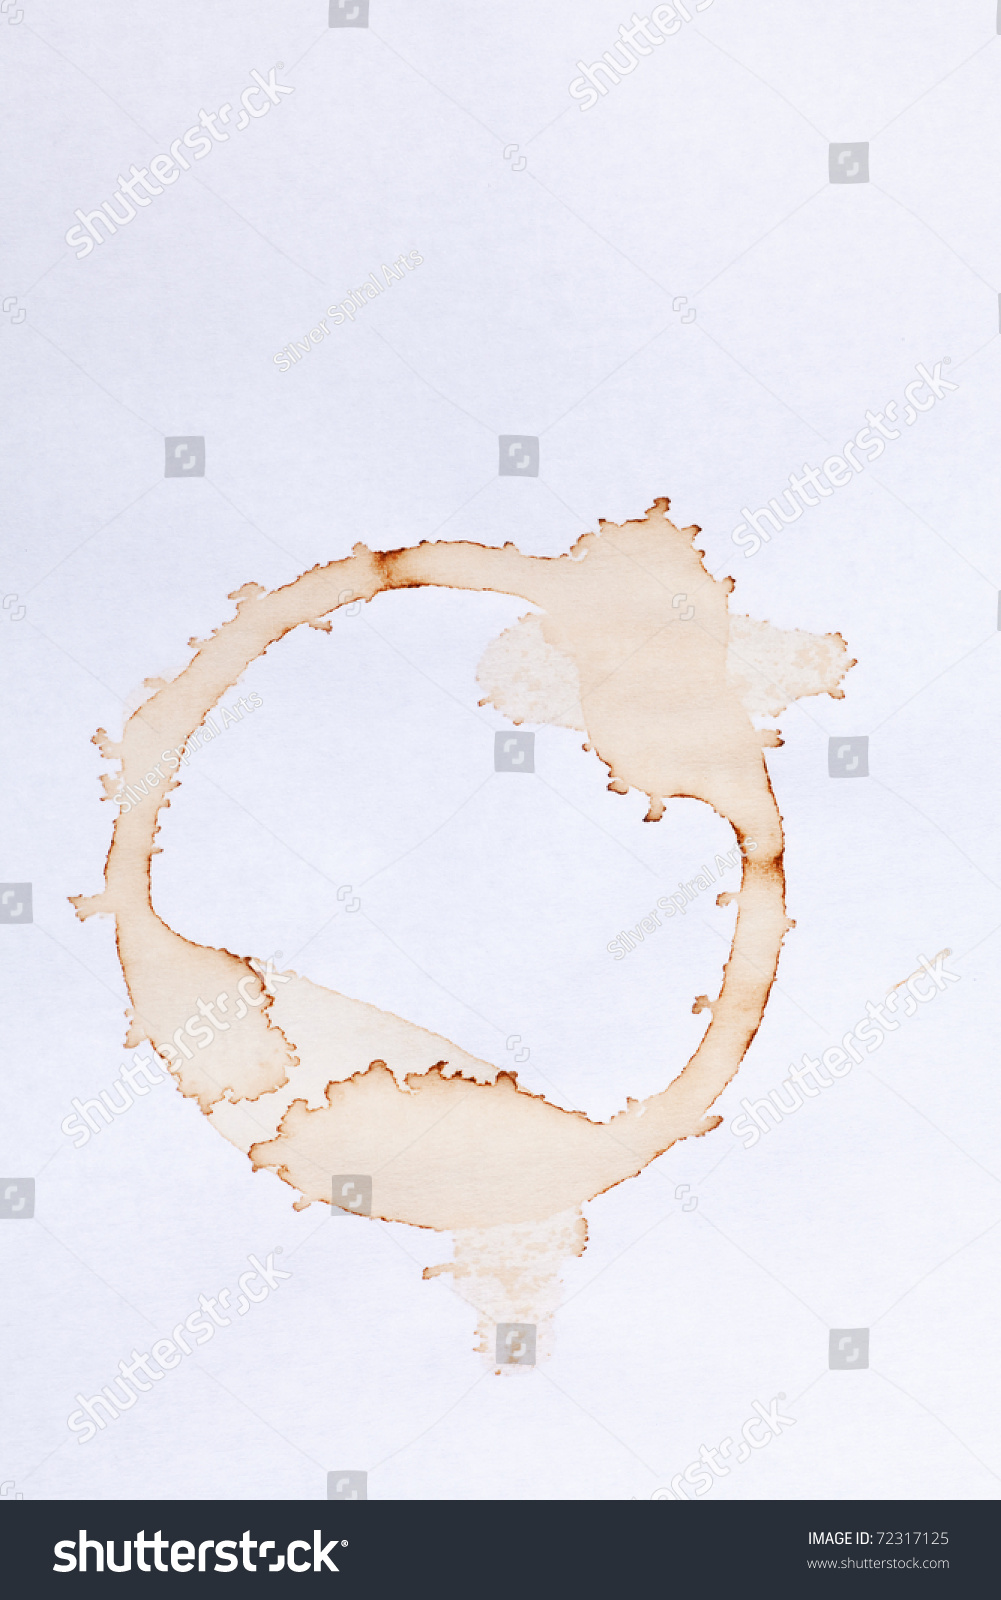 Coffee Ring Stains On White Paper Stock Photo 72317125 ...